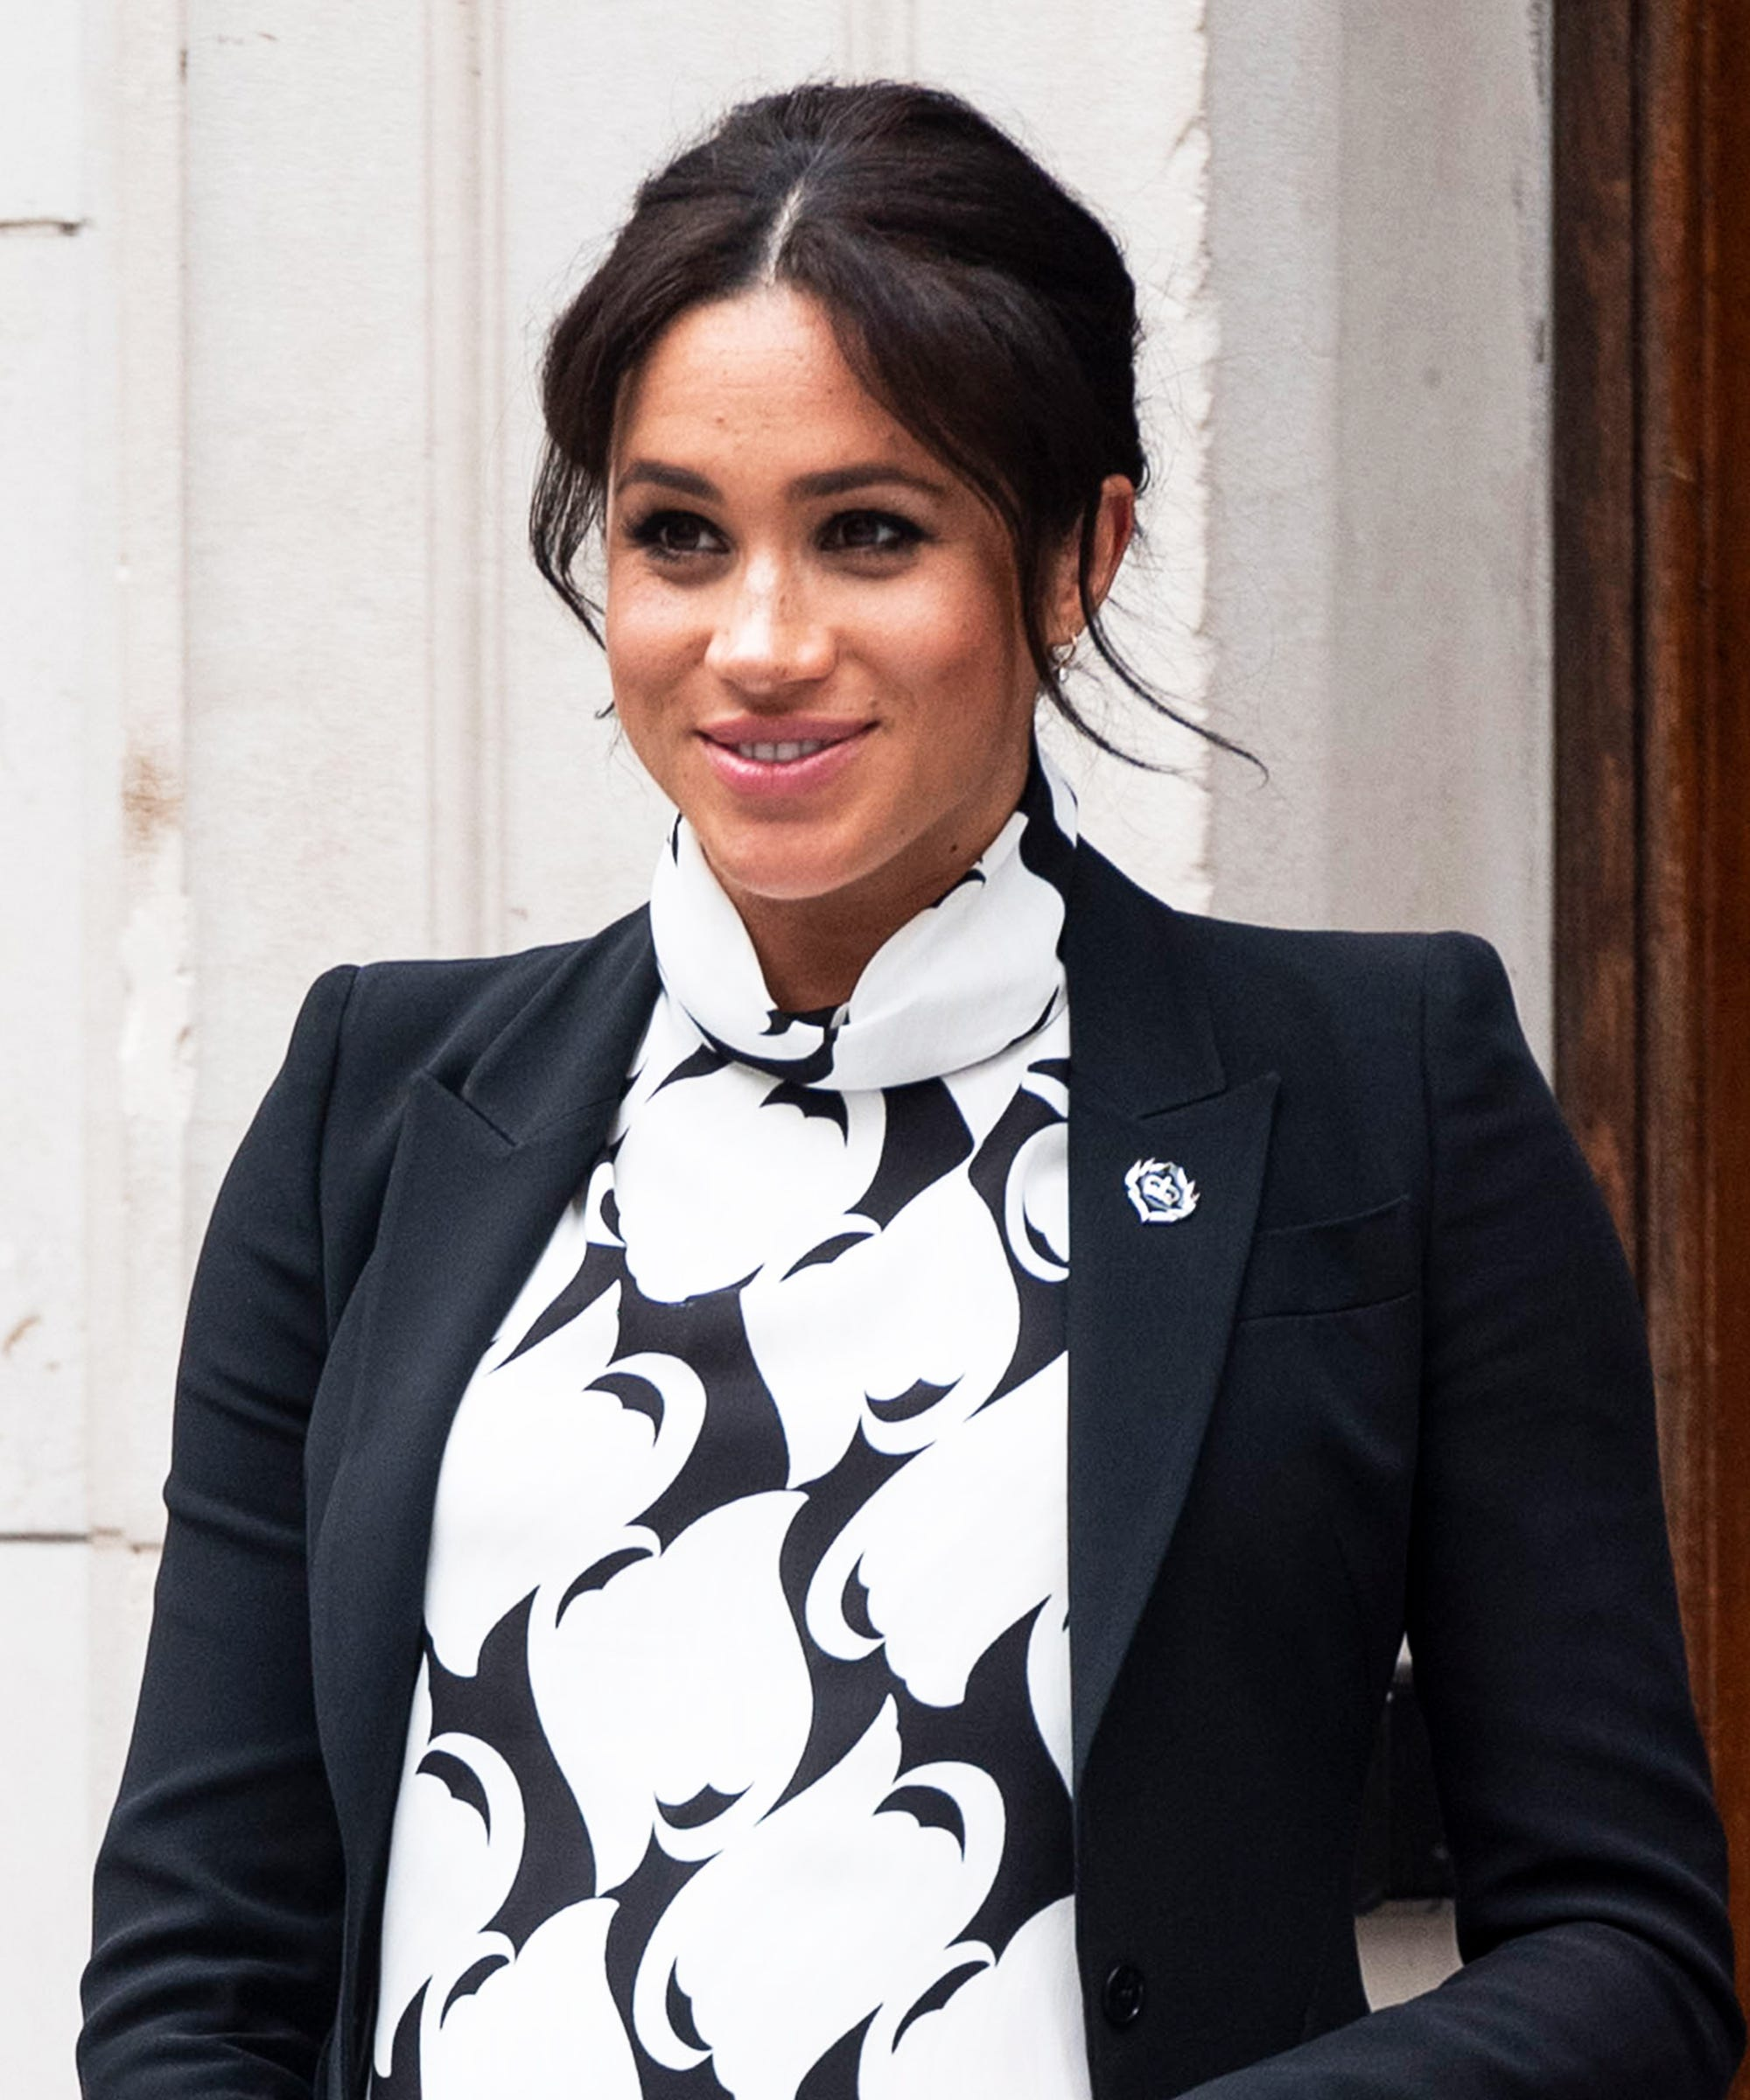 """Donald Trump Isn't Done Calling Women """"Nasty"""" — & Meghan Markle Is His Latest Target"""